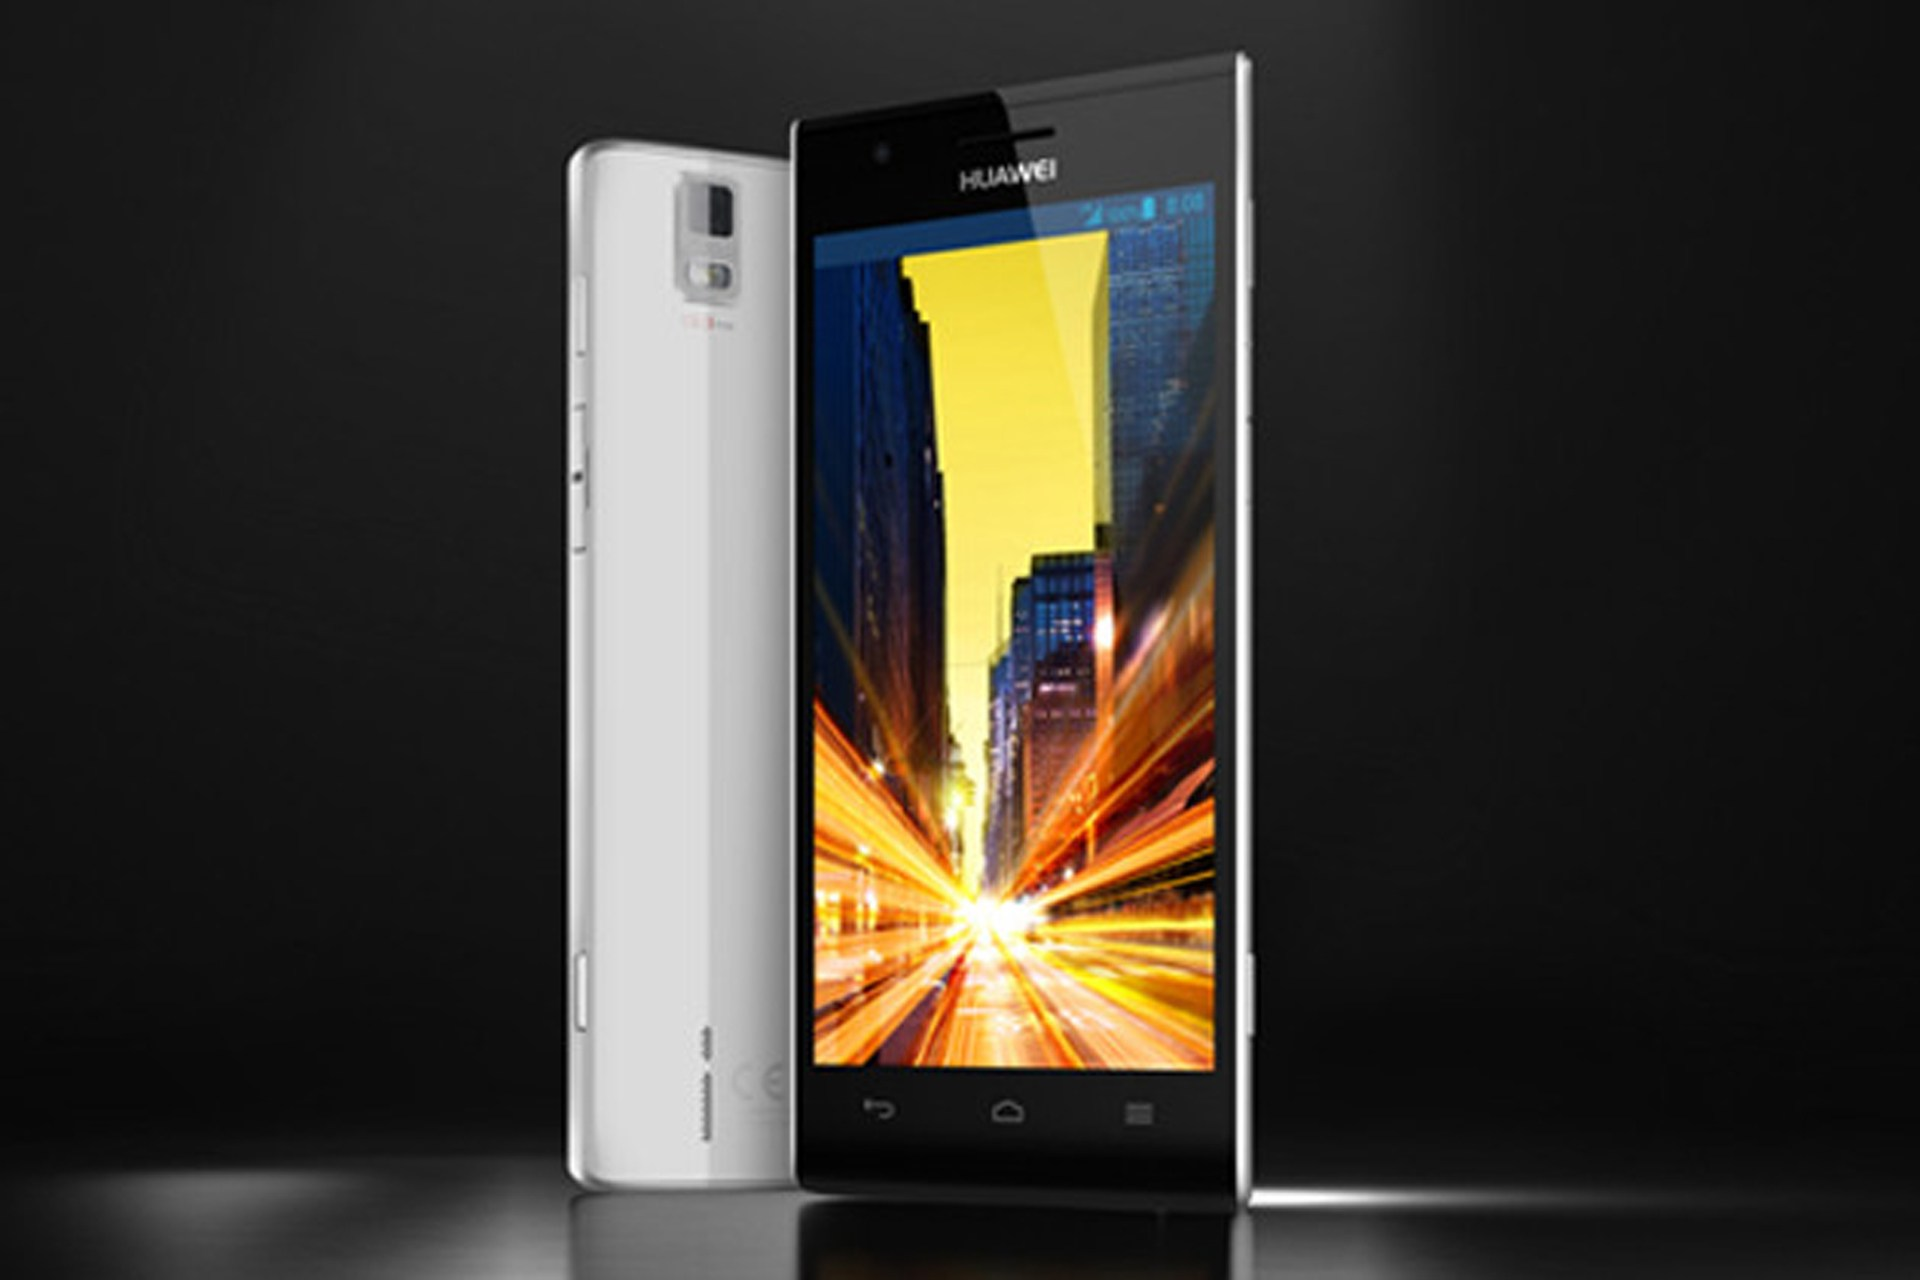 Huawei Ascend P2 specifications and price.